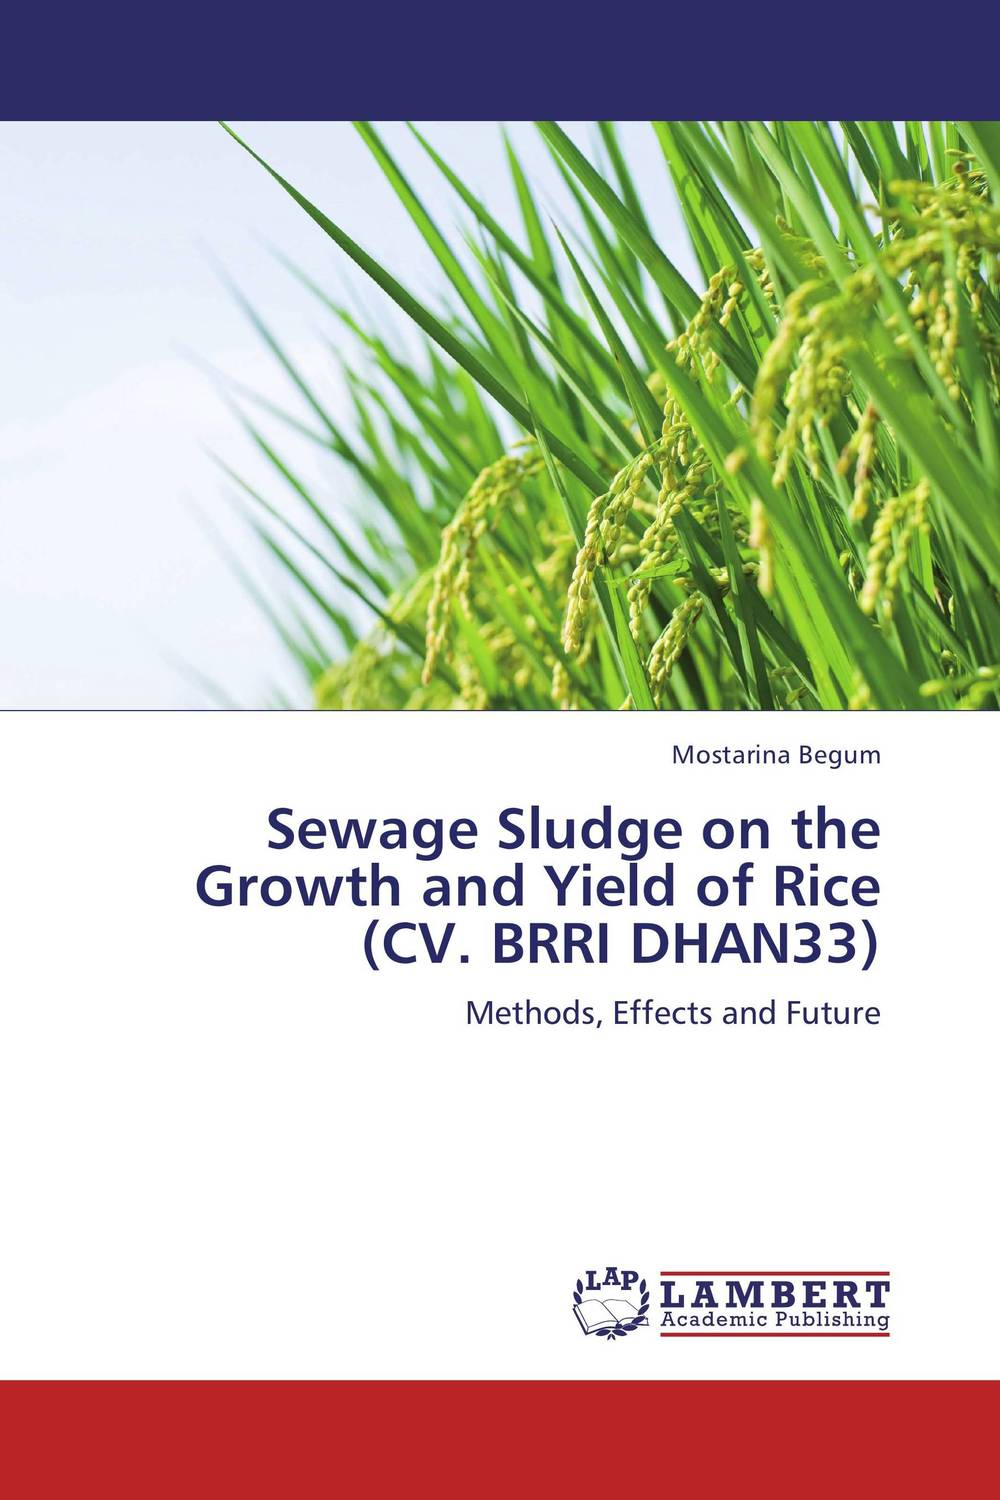 Sewage Sludge on the Growth and Yield of Rice (CV. BRRI DHAN33) effect of zn fe and fym on growth yield and nutrient content of rice